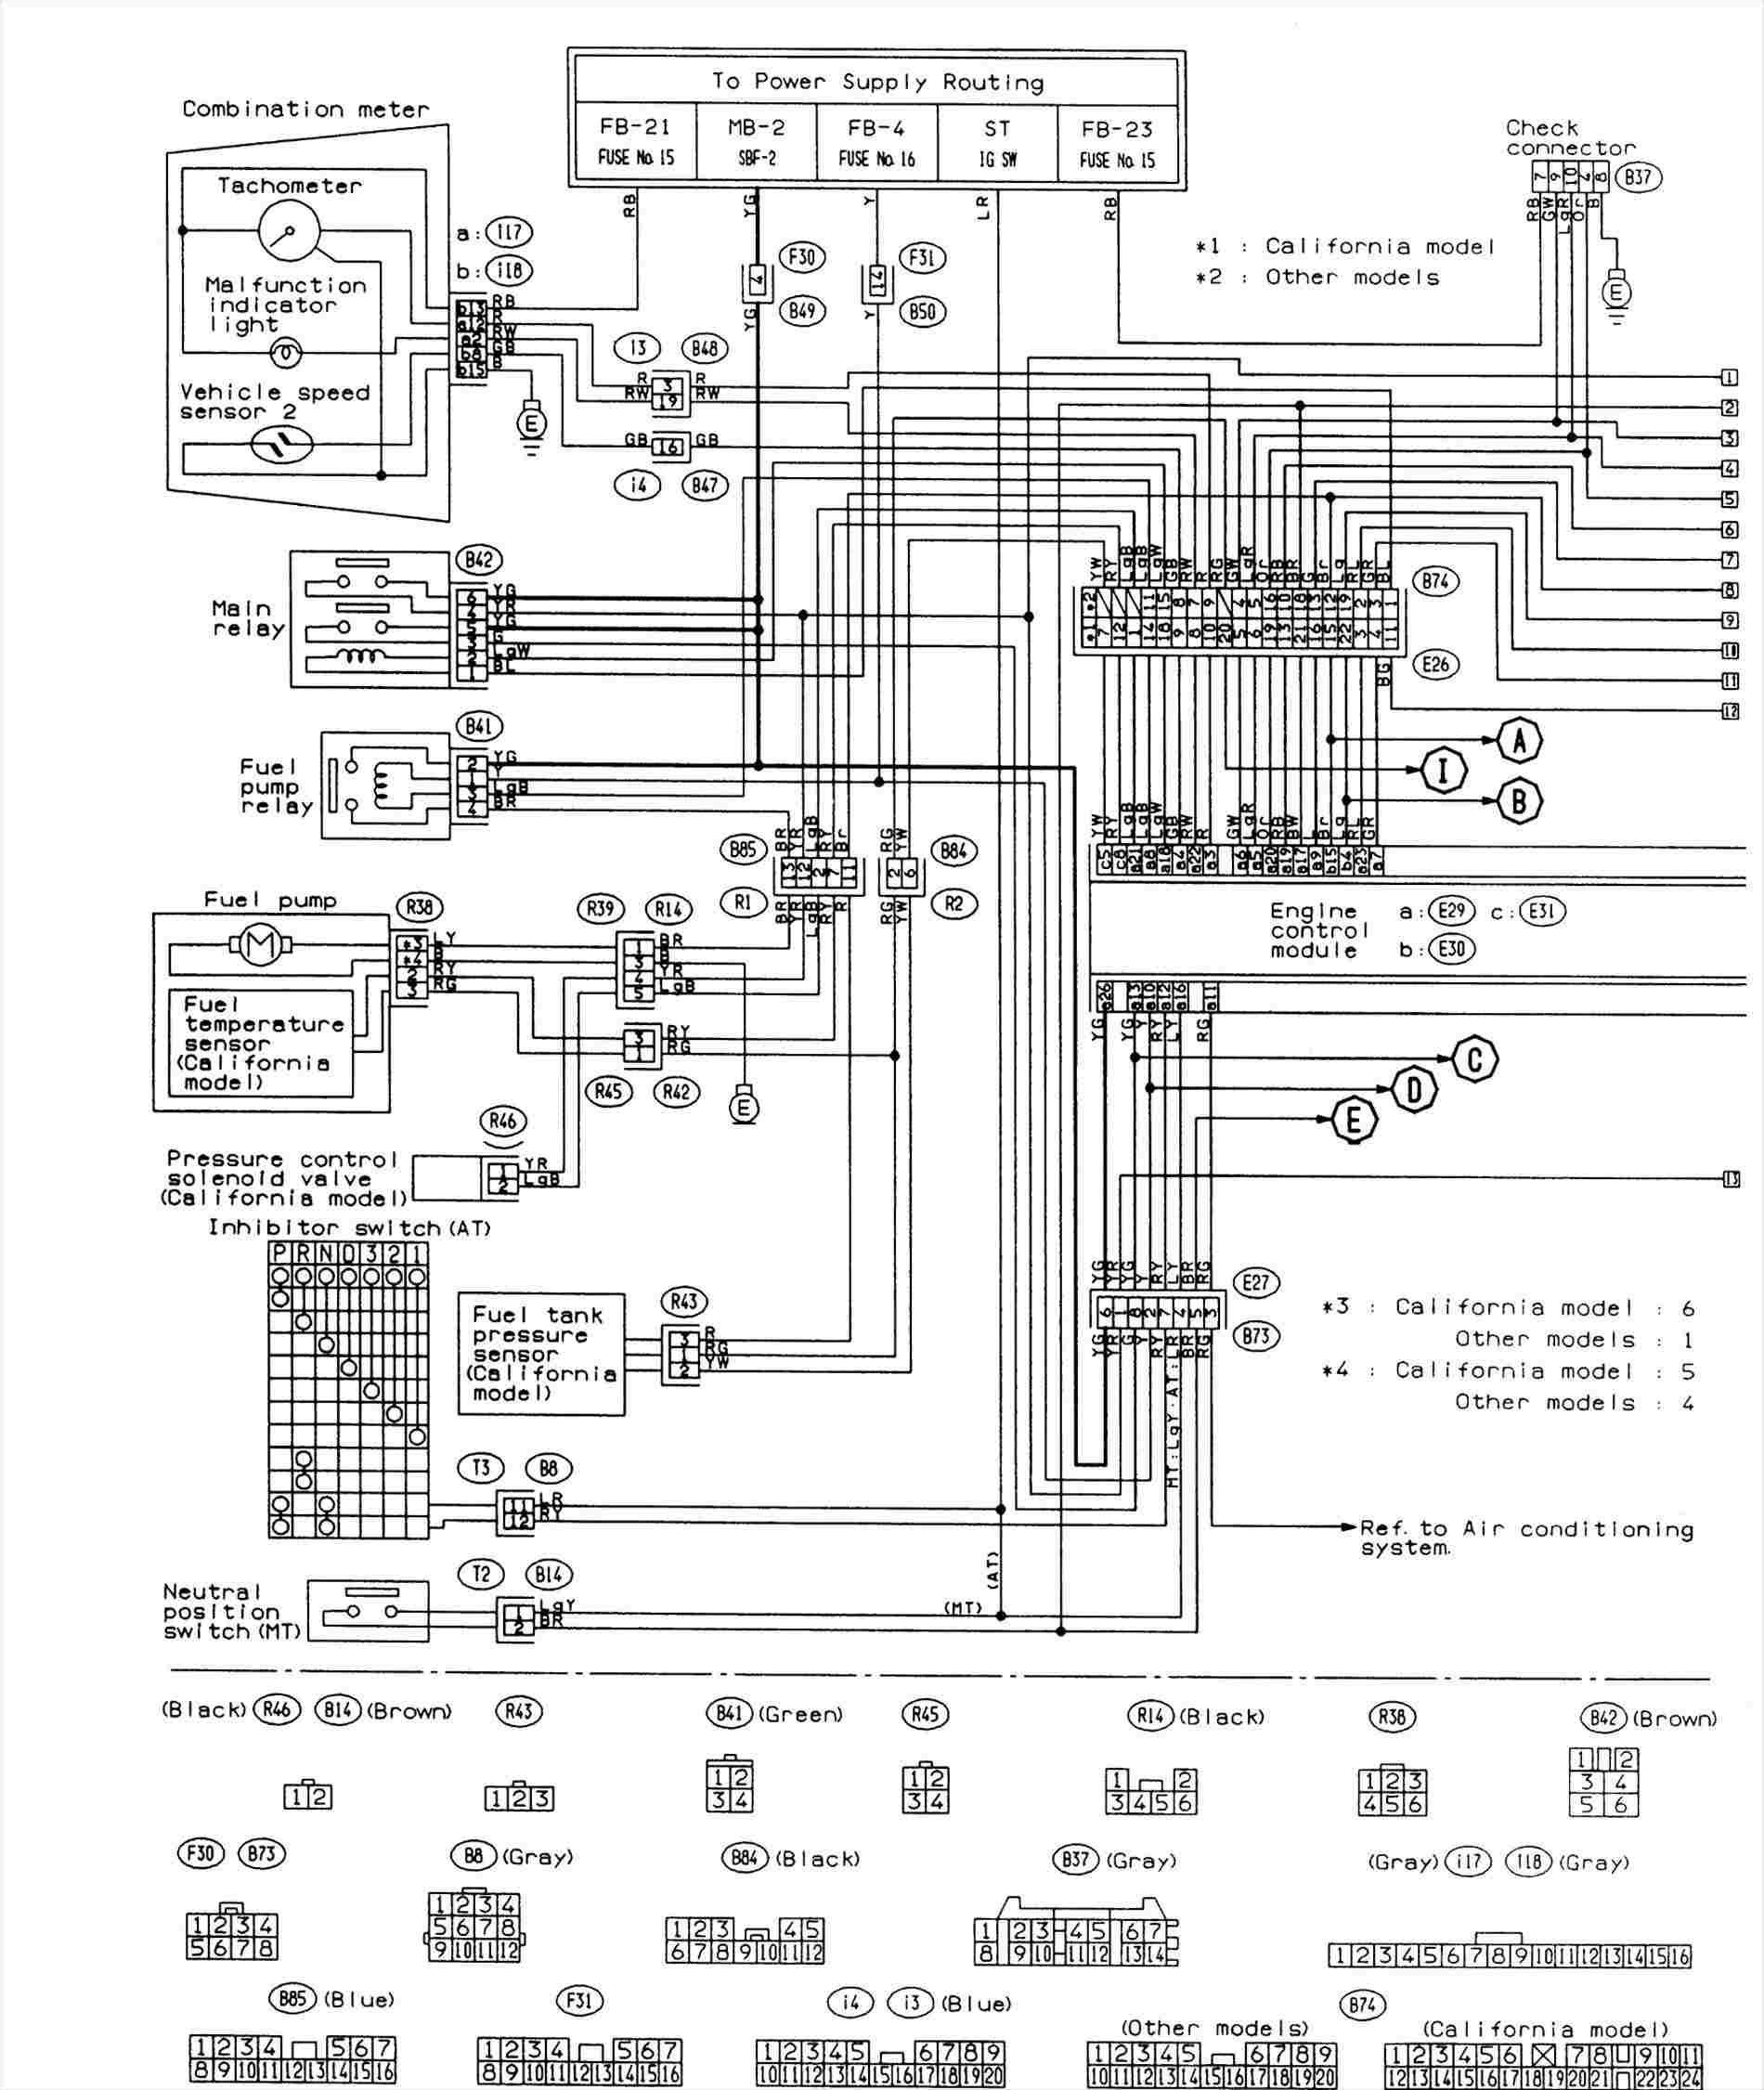 A Wiring Diagram Is A Type Of Schematic That Uses Abstract Pictorial Symbols To Show All The Interconnections Subaru Impreza Subaru Forester Electrical Diagram